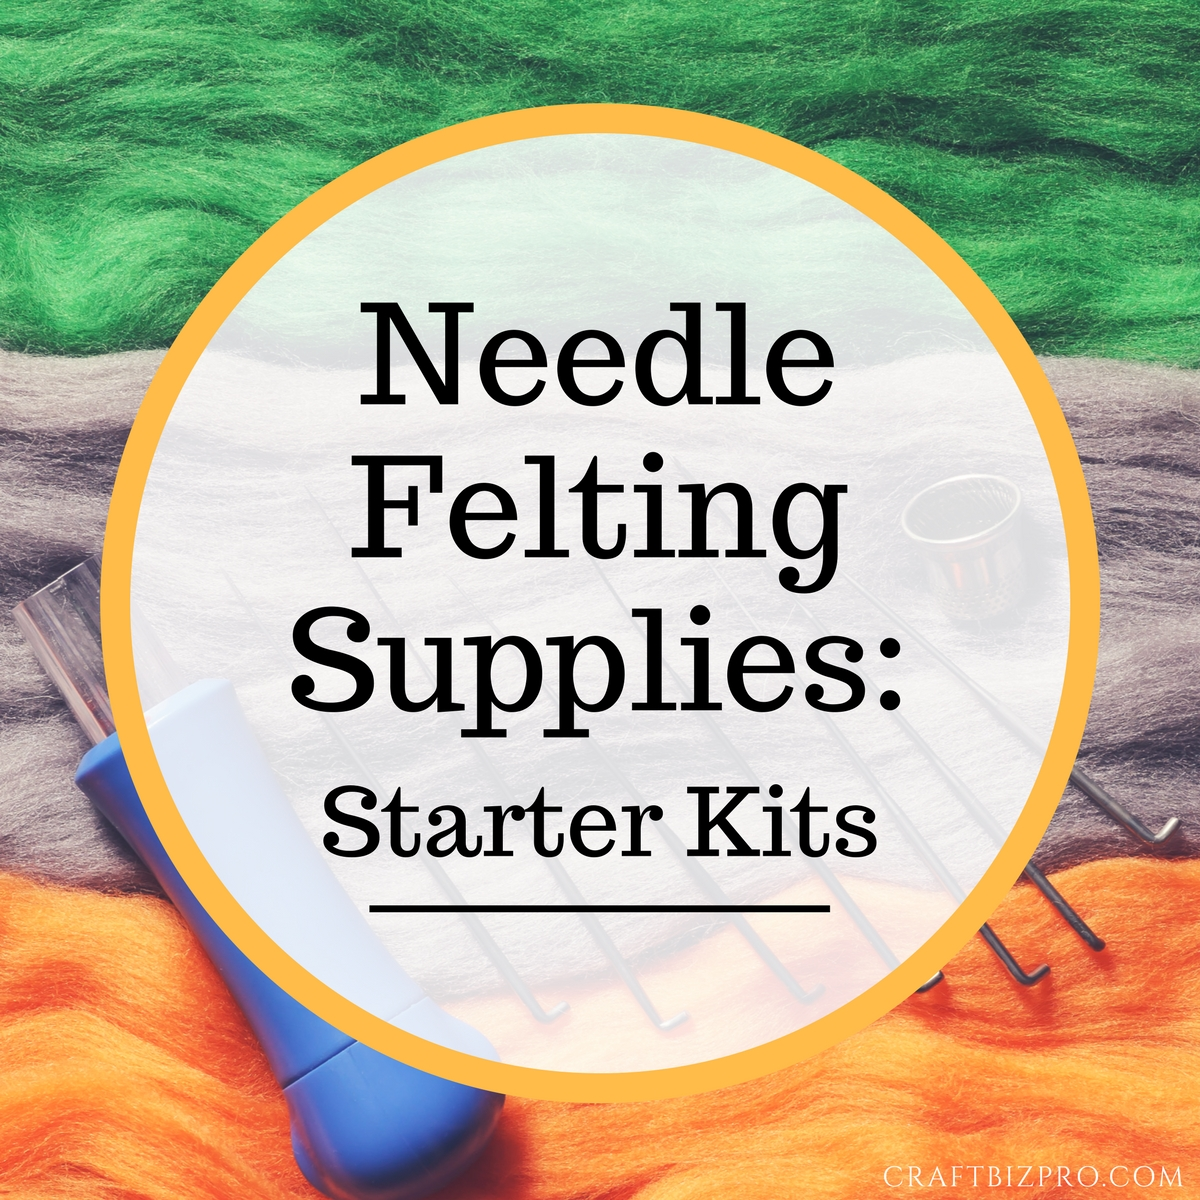 Needle Felting Supplies: Starter Kits